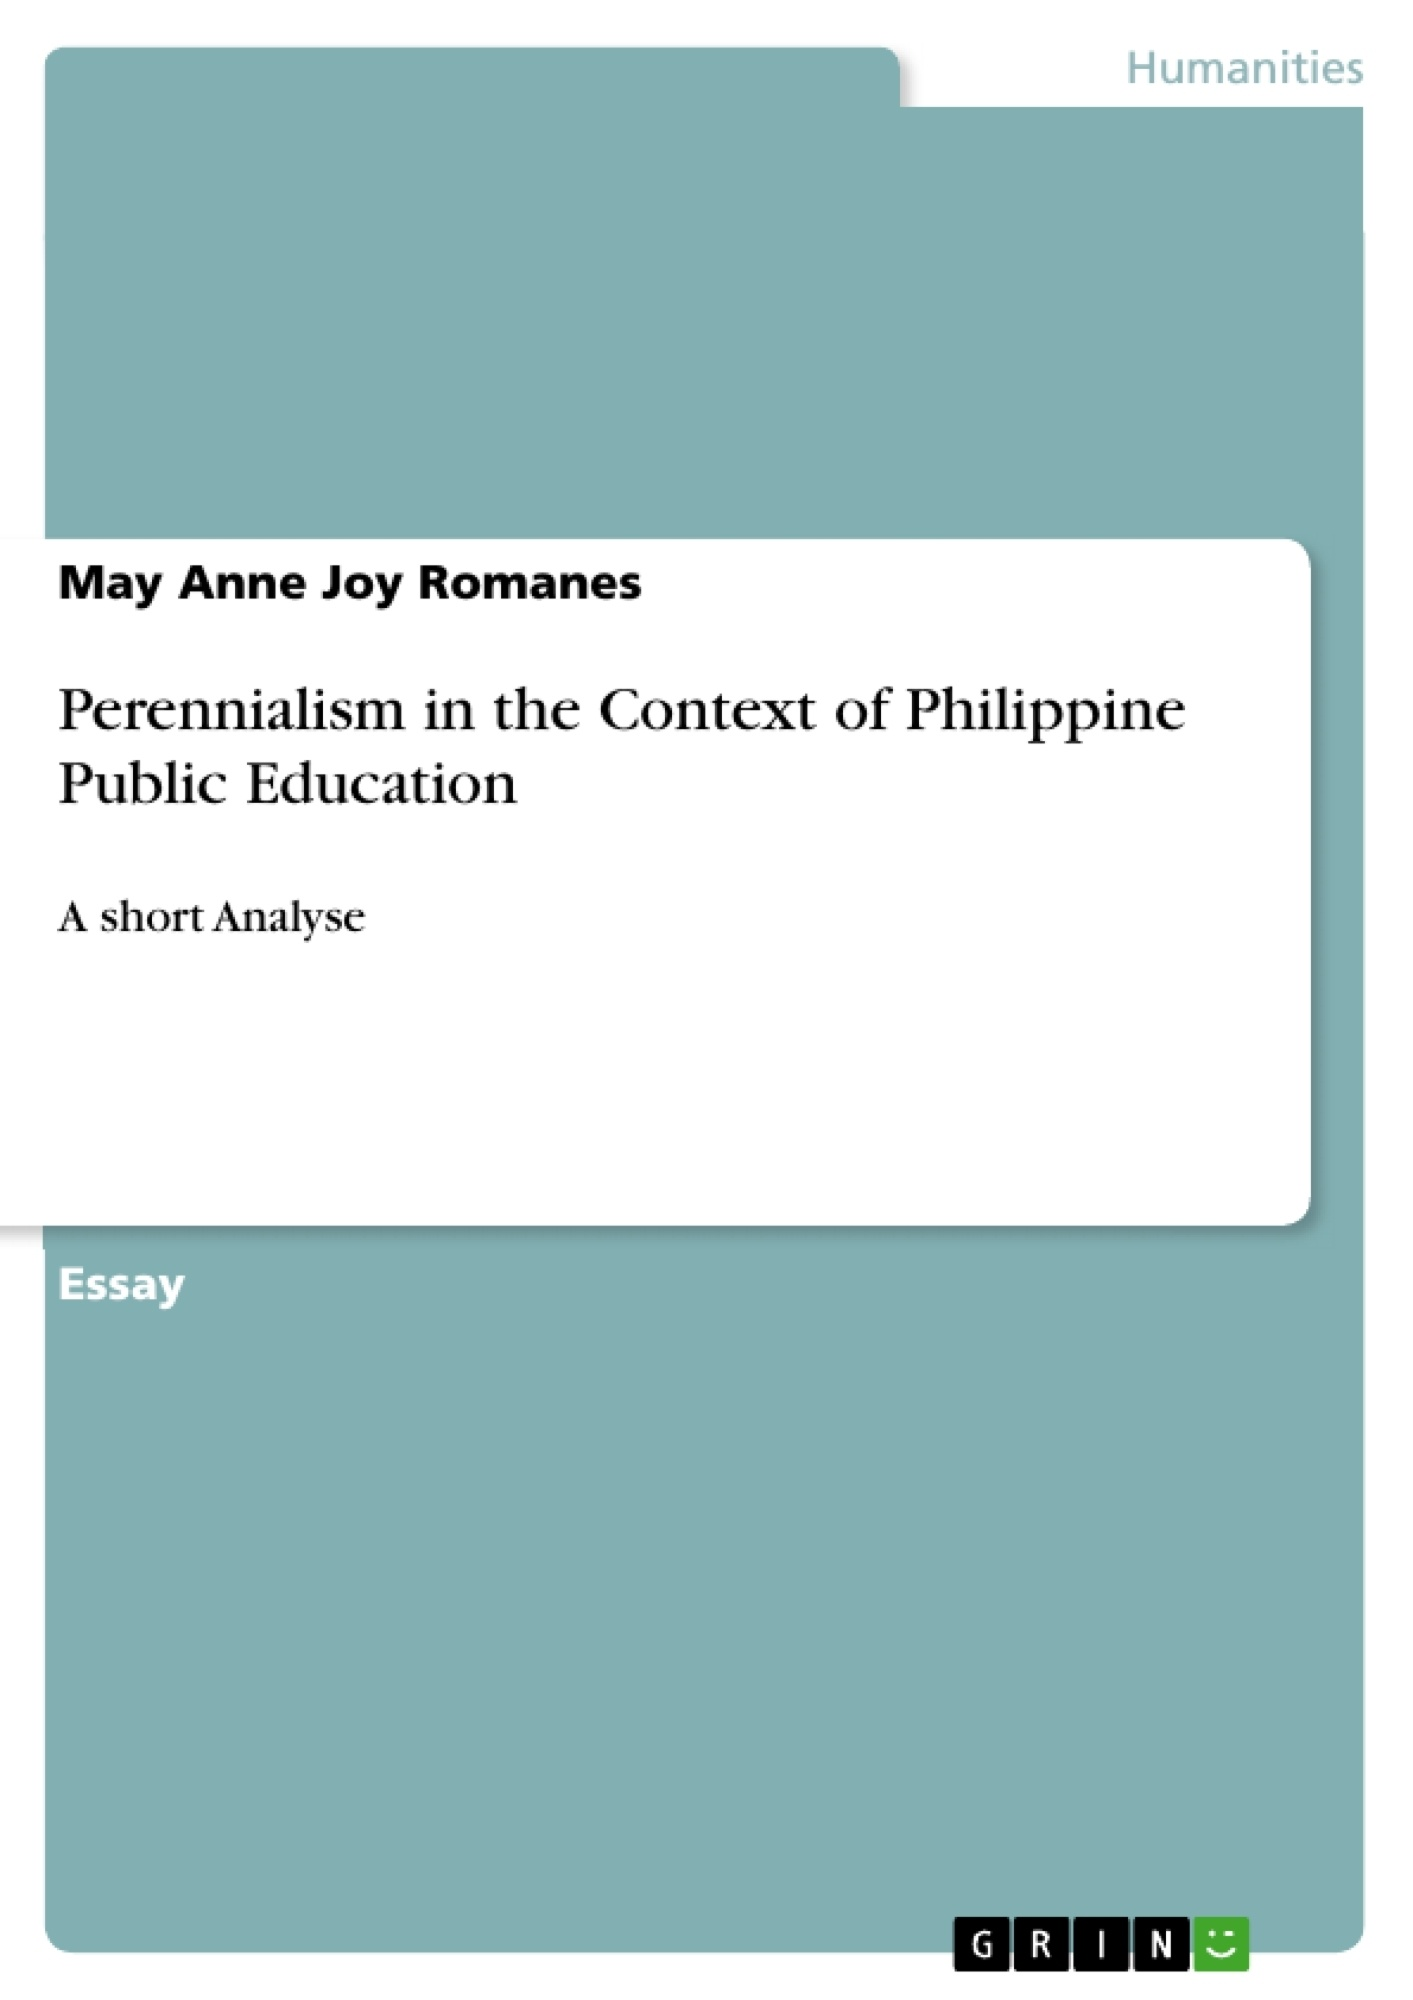 Title: Perennialism in the Context of Philippine Public Education